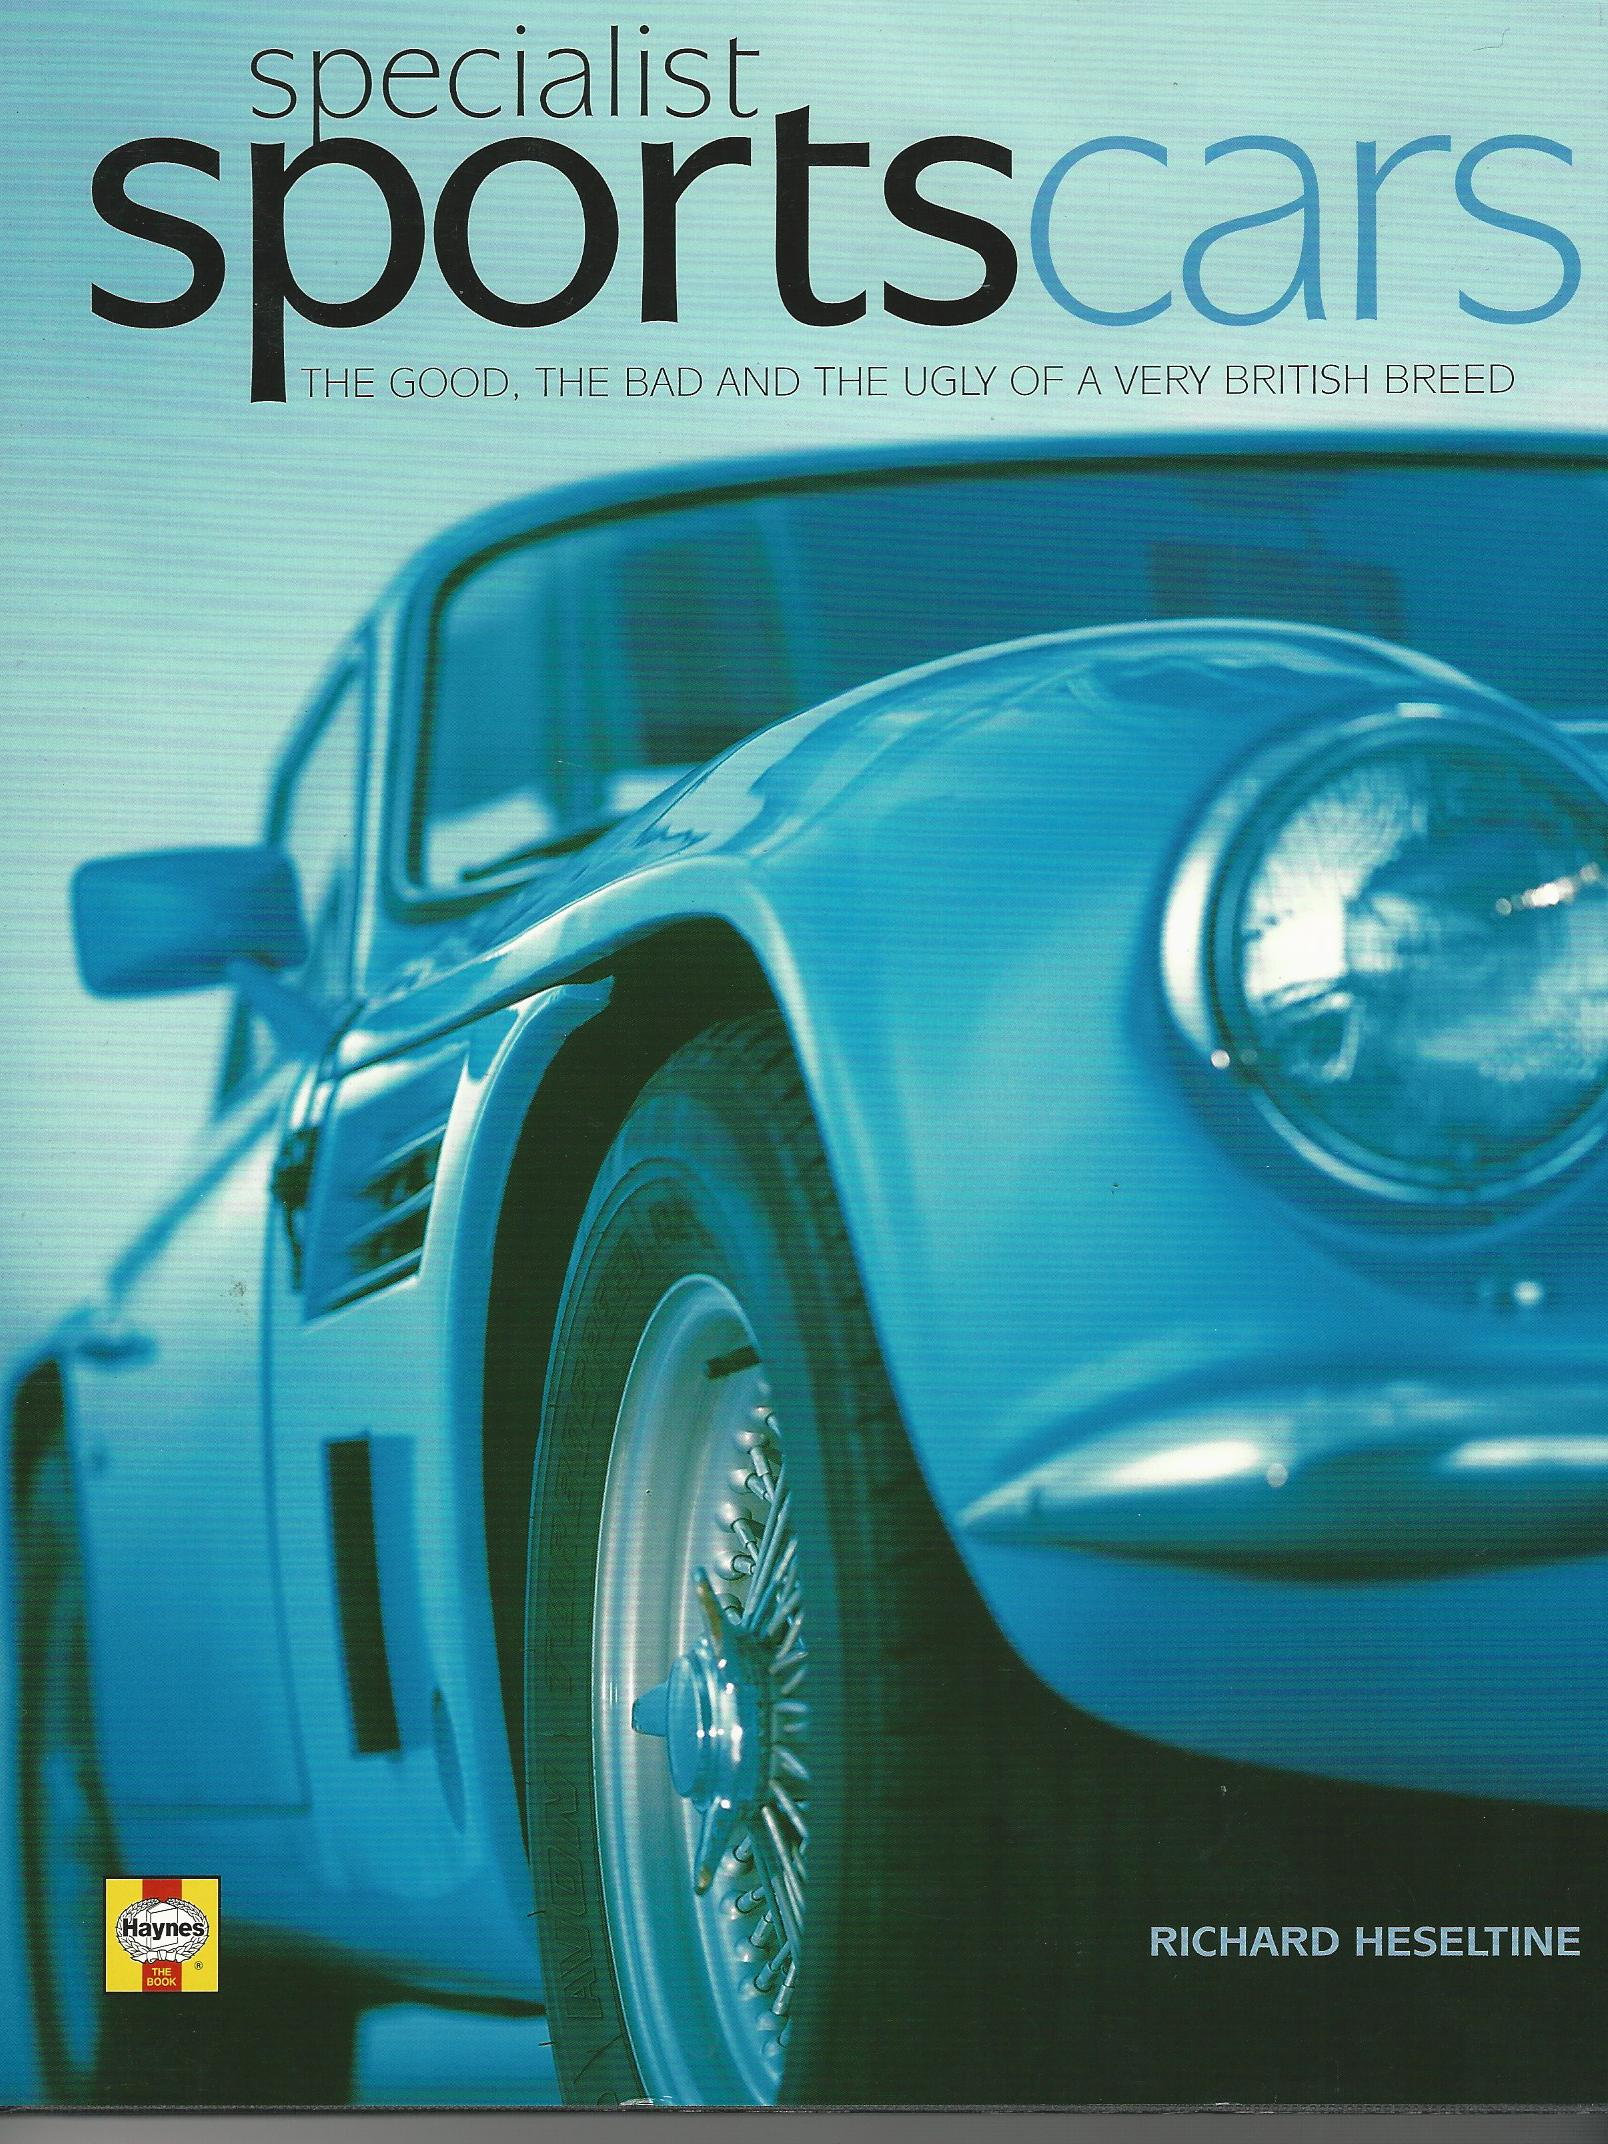 Image for Specialist Sports Cars: The Good, the Bad and the Ugly from a Very British Breed